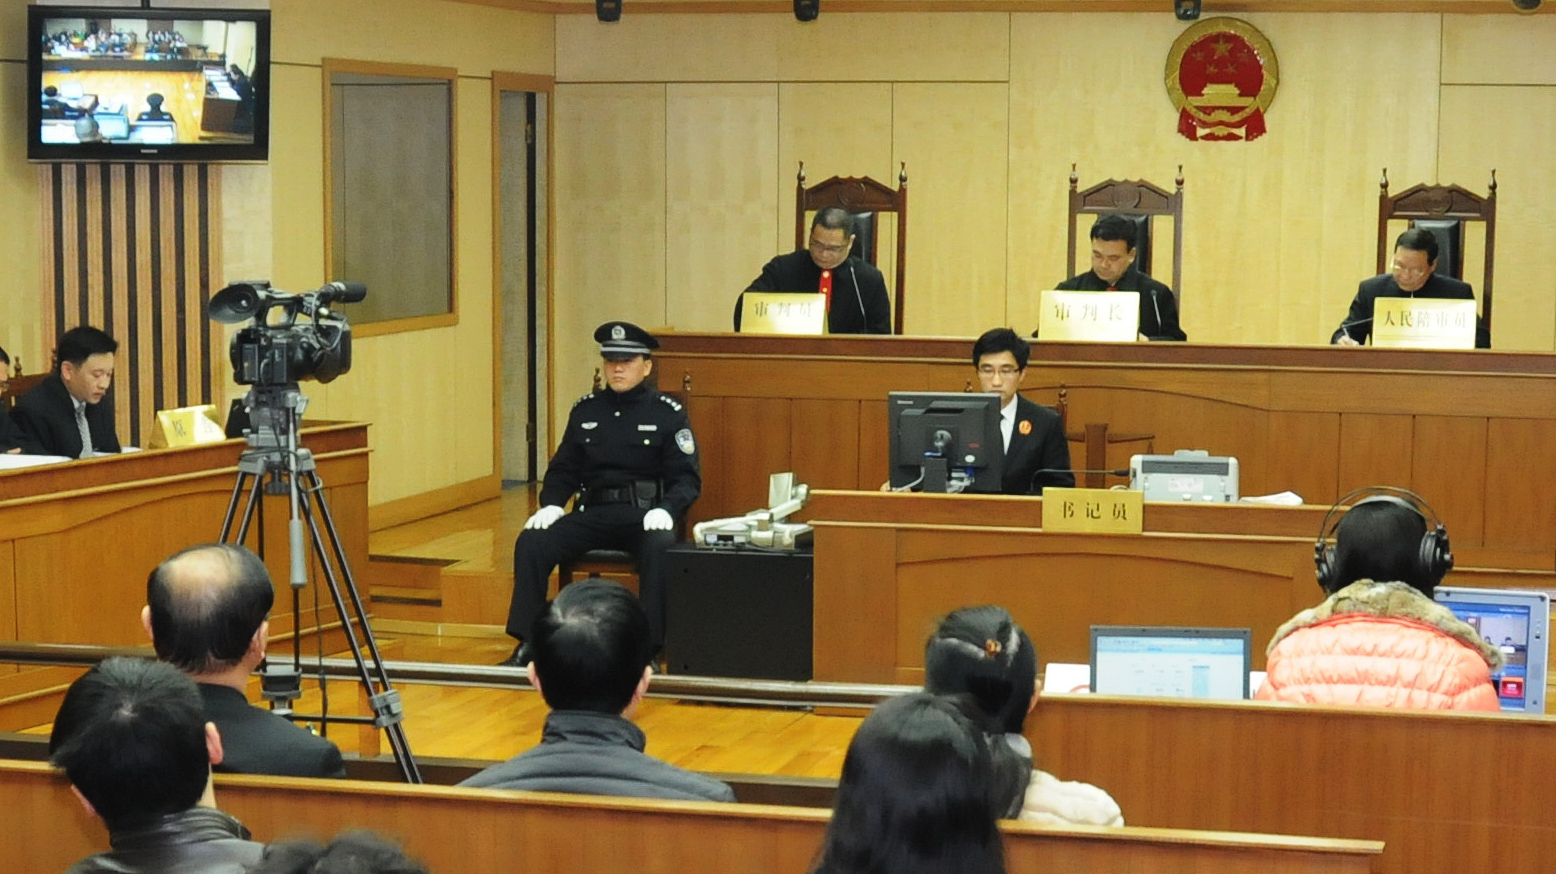 District Attorney Meaning In Chinese